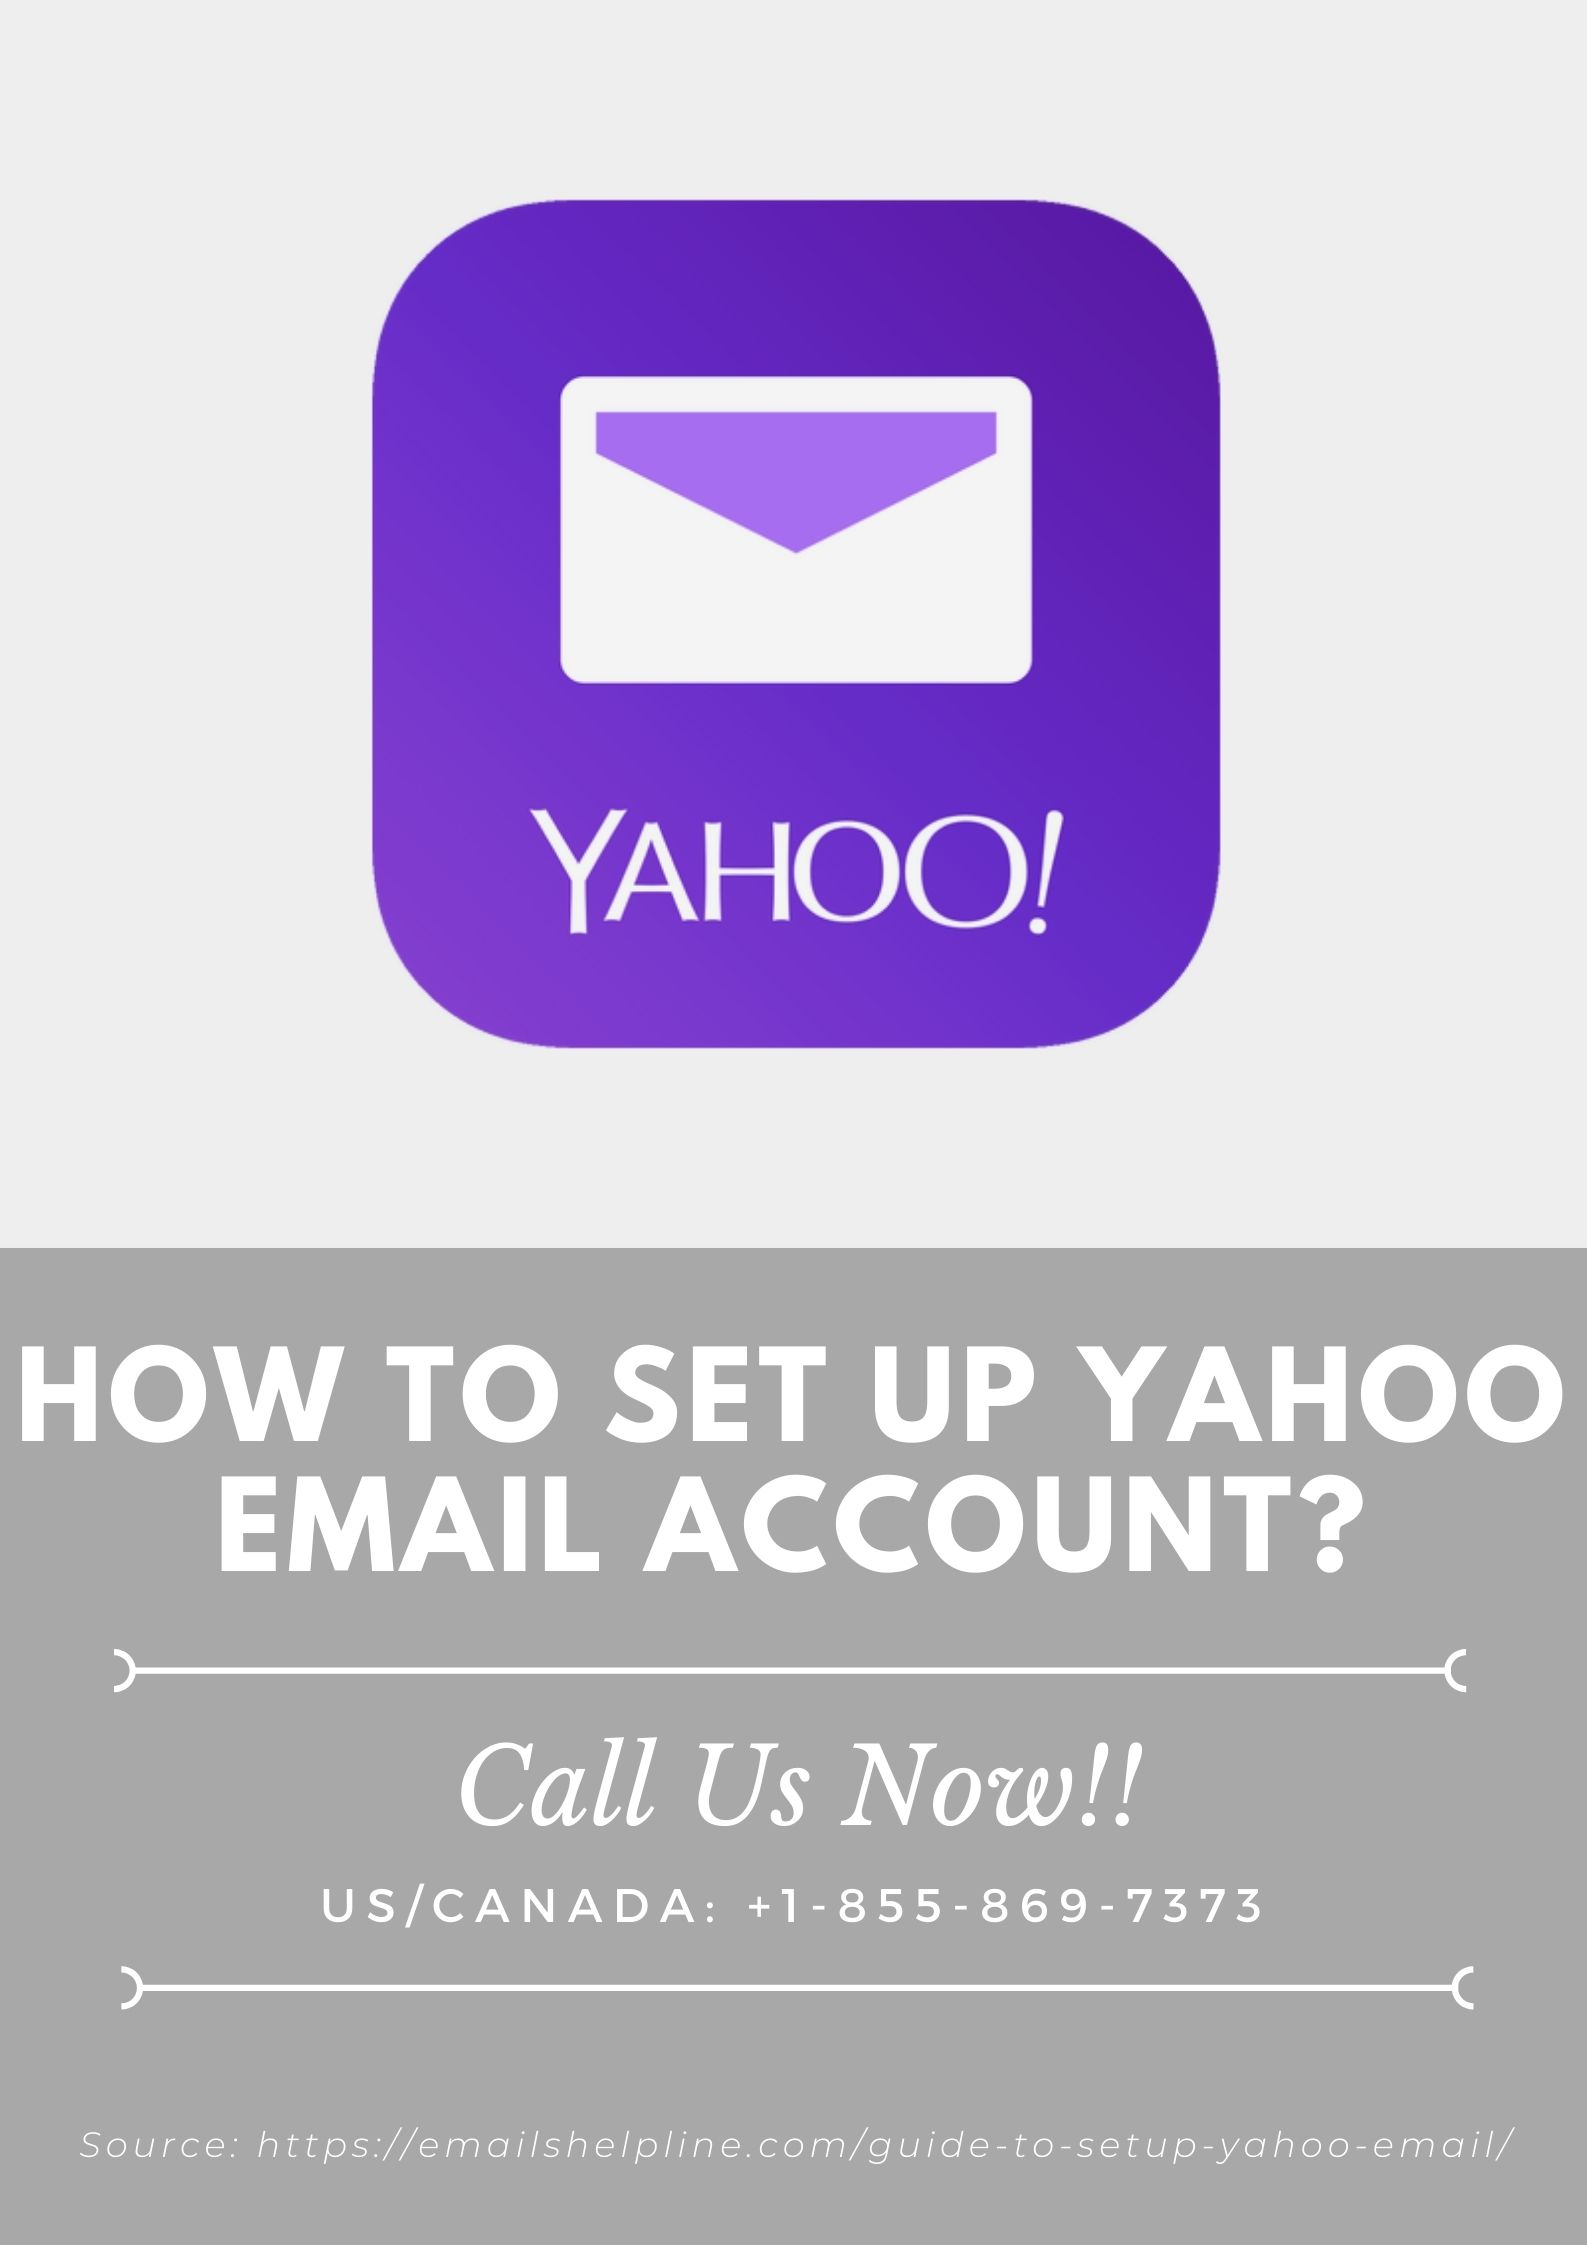 How to Set Up Yahoo Email Account Emails Helpline